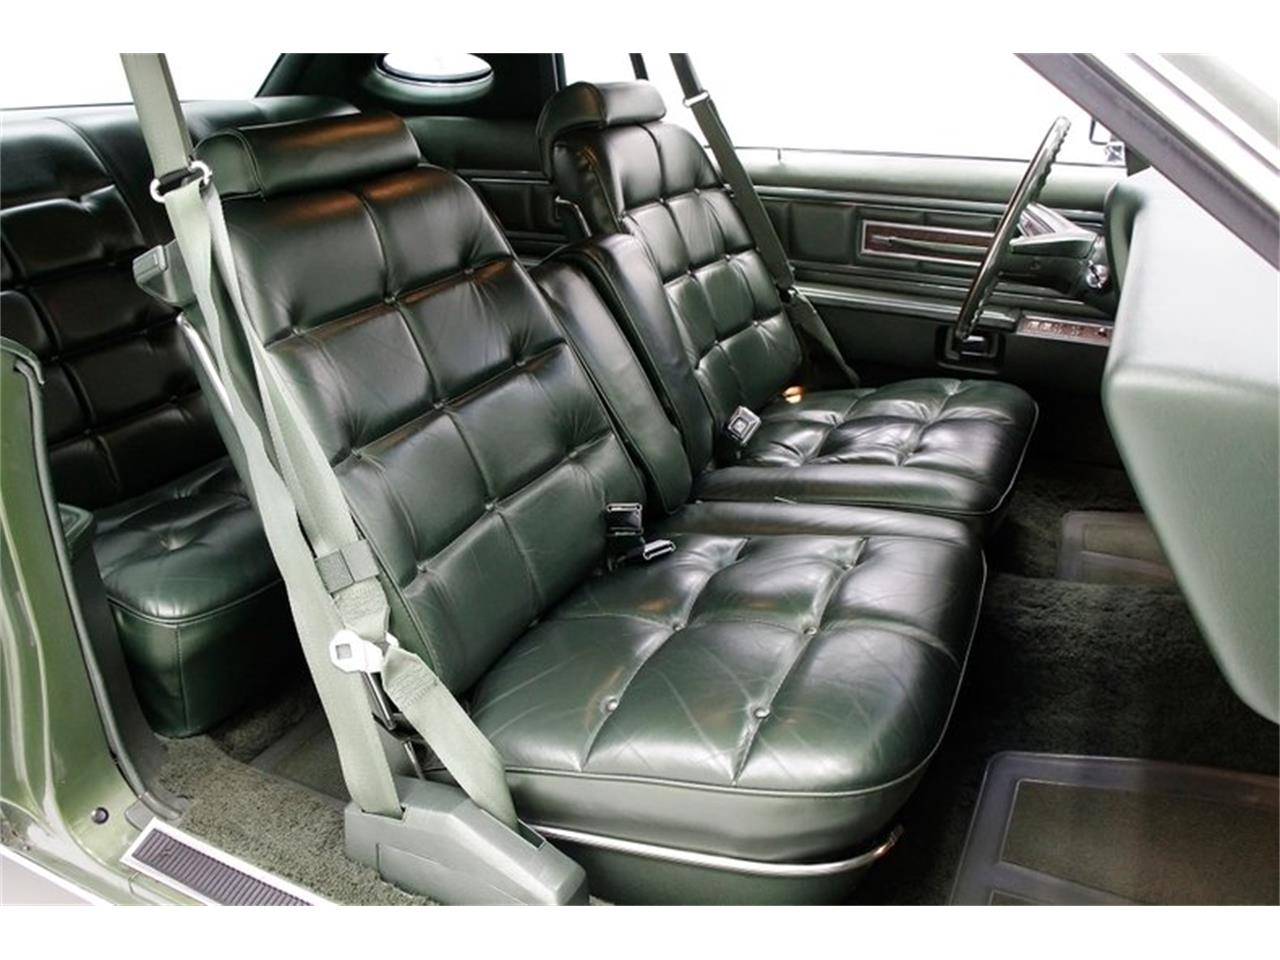 1974 Lincoln Continental Mark IV for sale in Morgantown, PA – photo 31